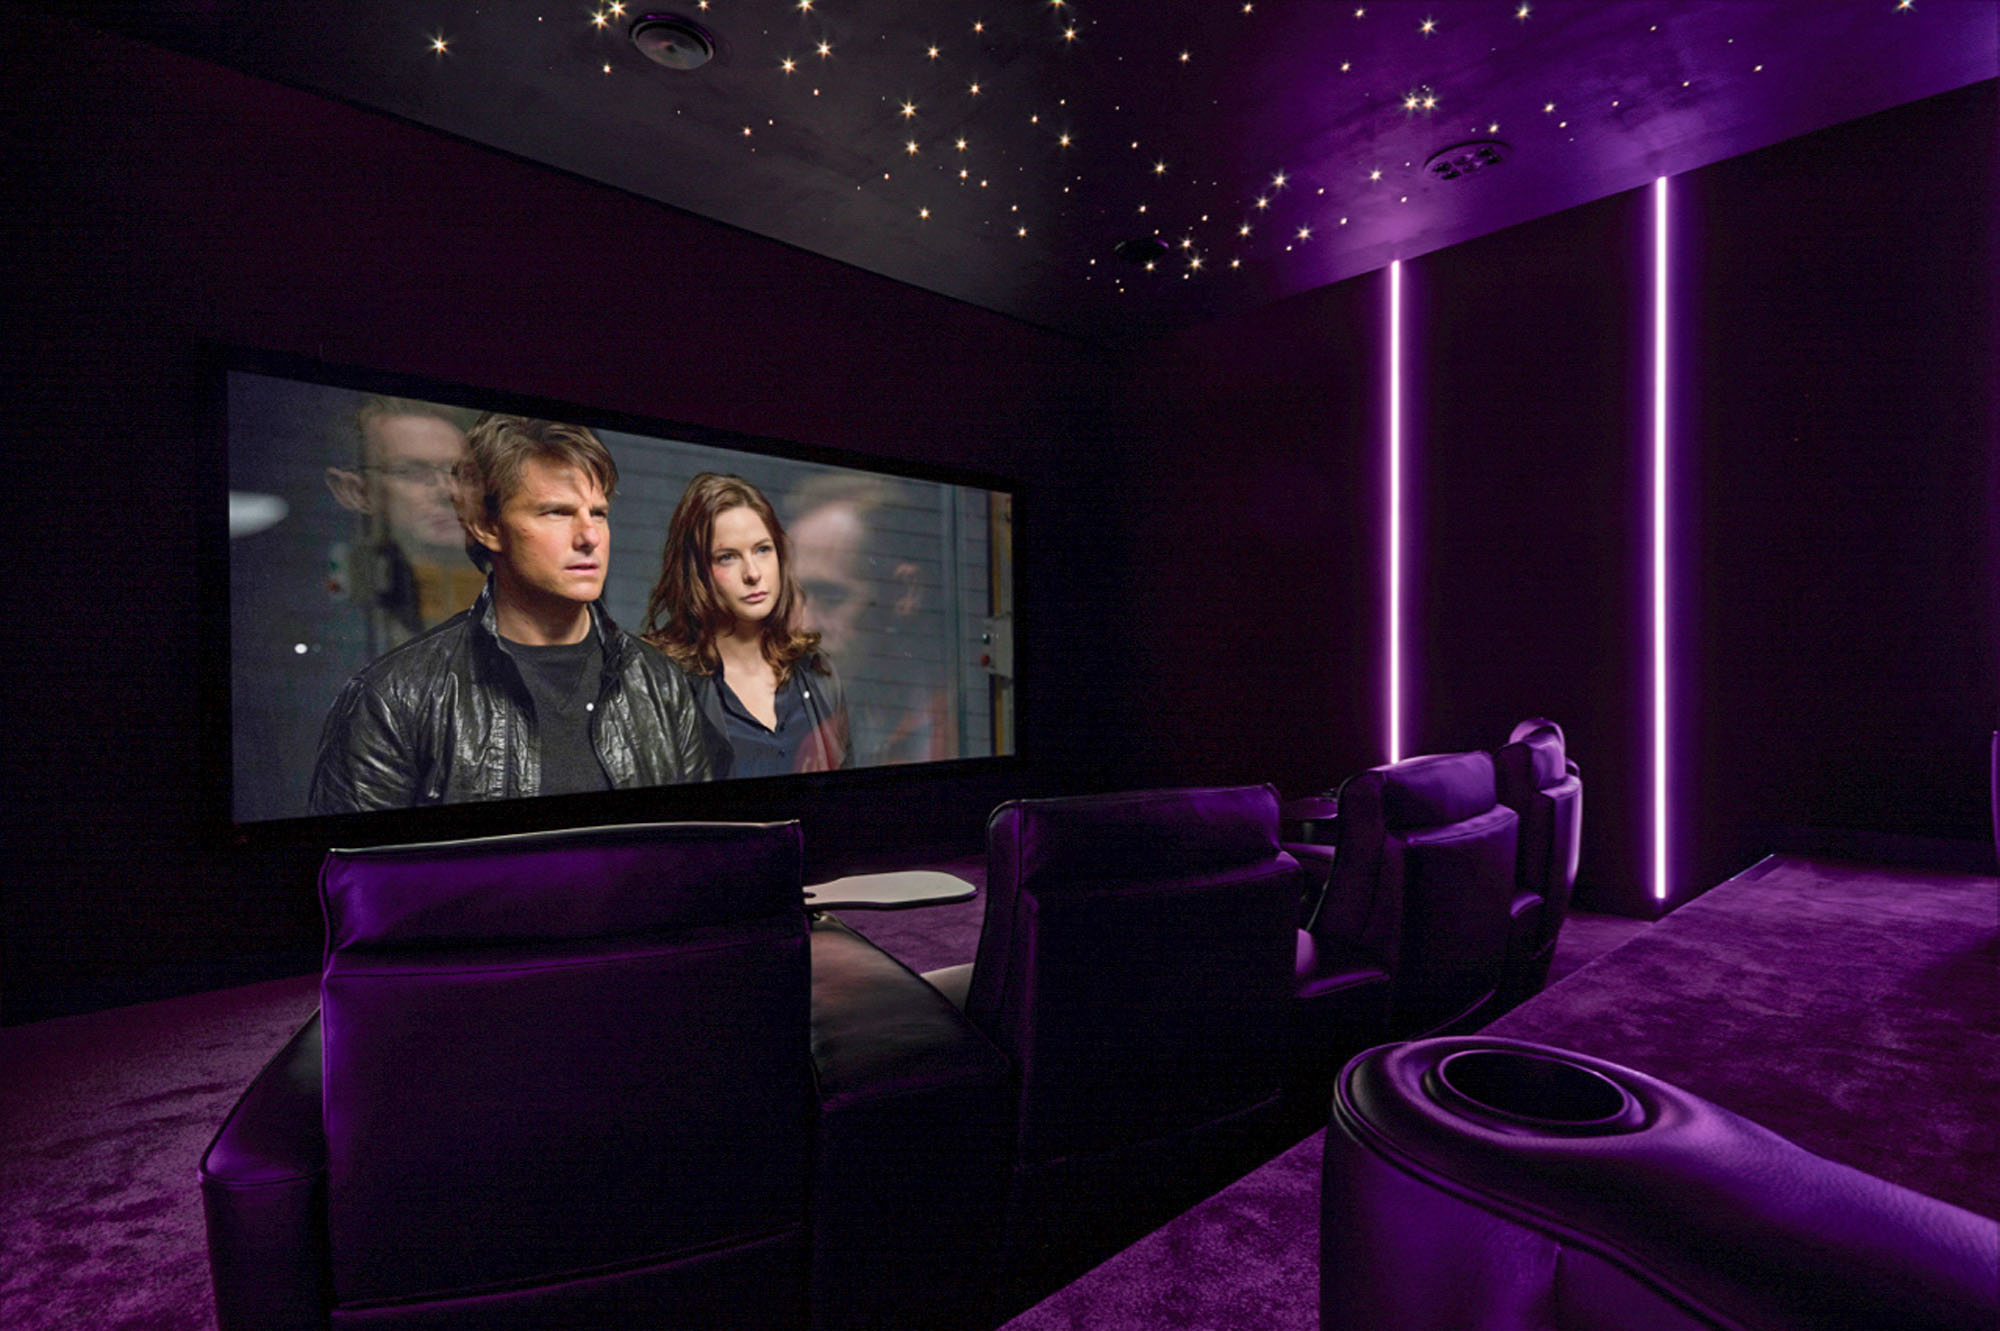 Home_Cinema_by_Futurehome_3.jpg